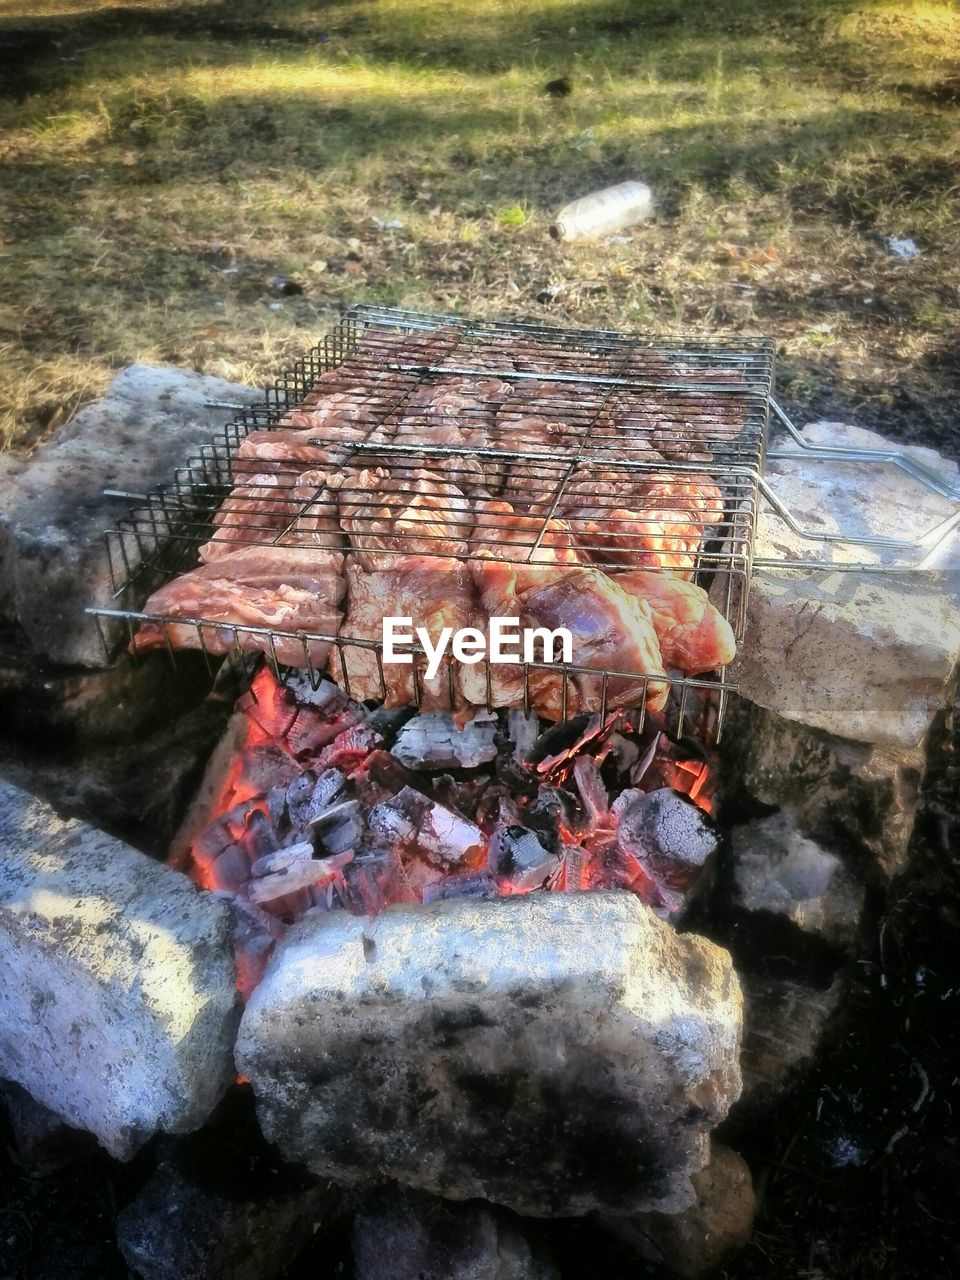 High angle view of meat in metal grate over burning coal amidst rocks in back yard